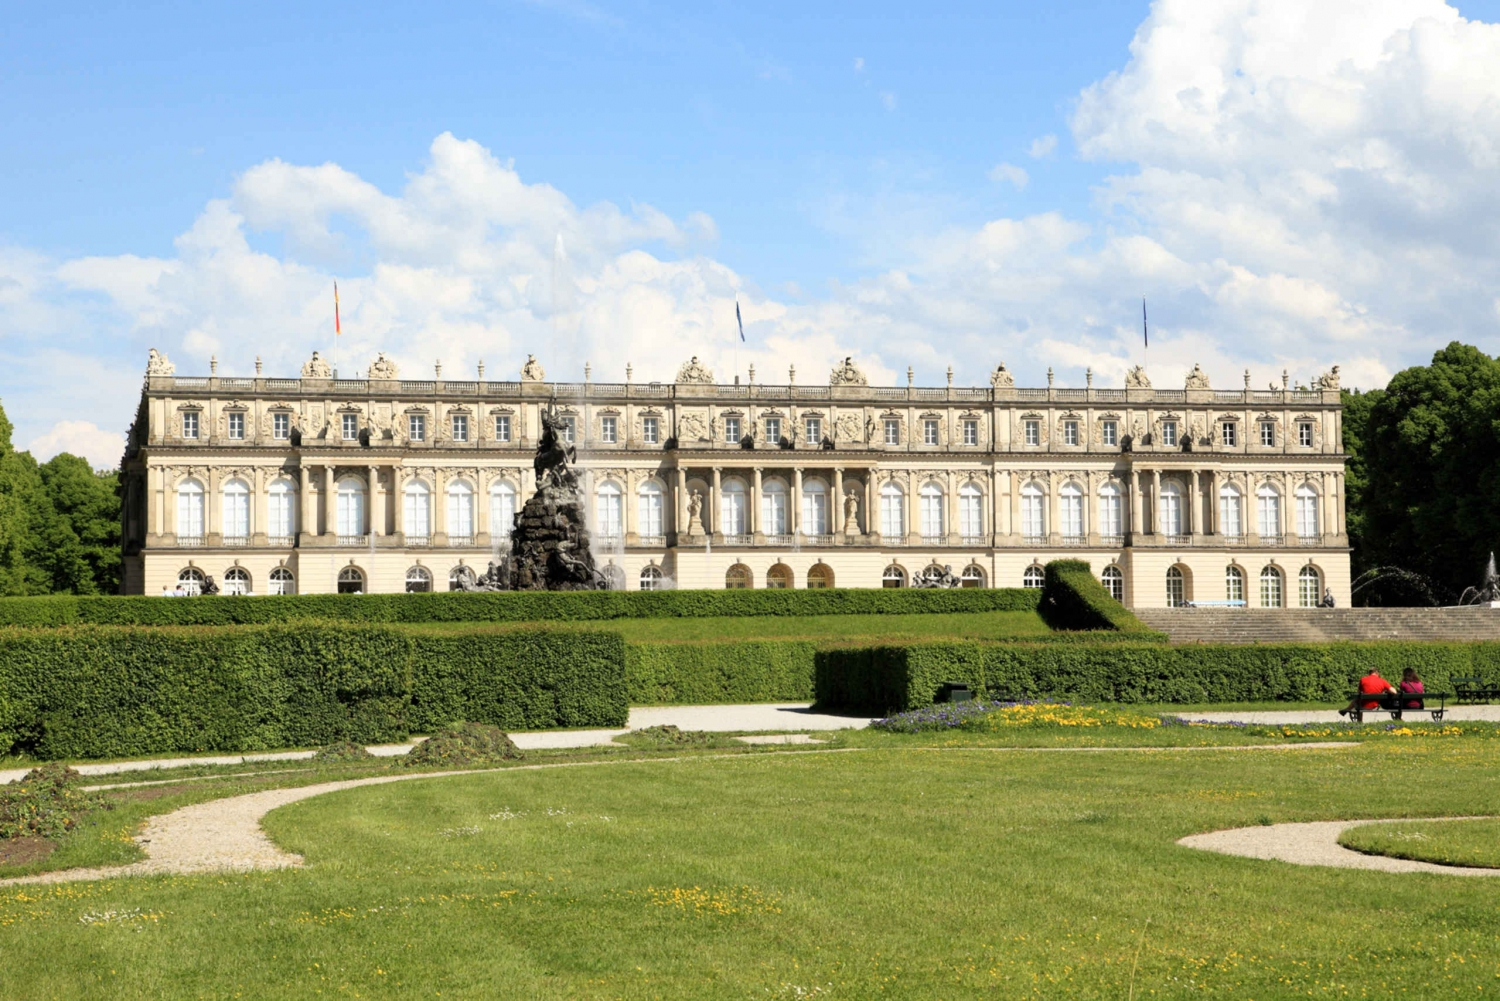 Day-Trip to the Royal Palace of Herrenchiemsee